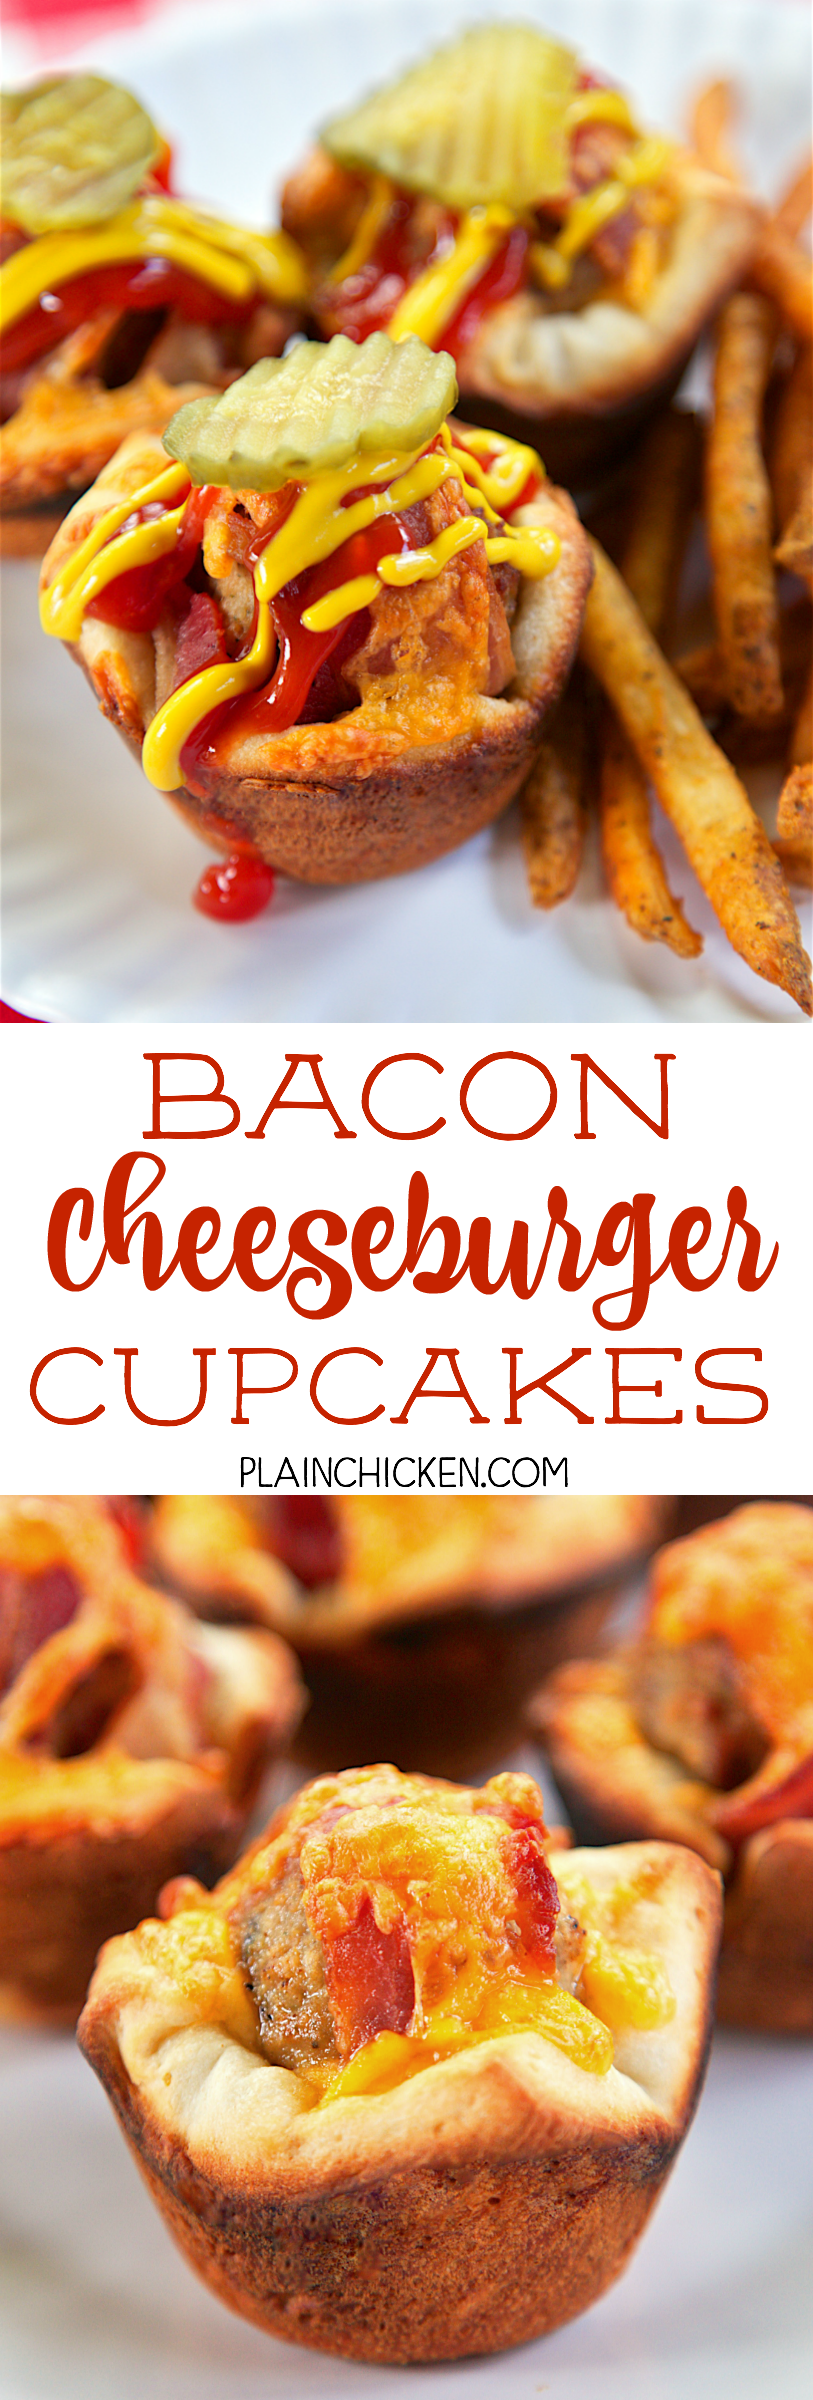 Bacon Cheeseburger Cupcakes - only 4 ingredients ...